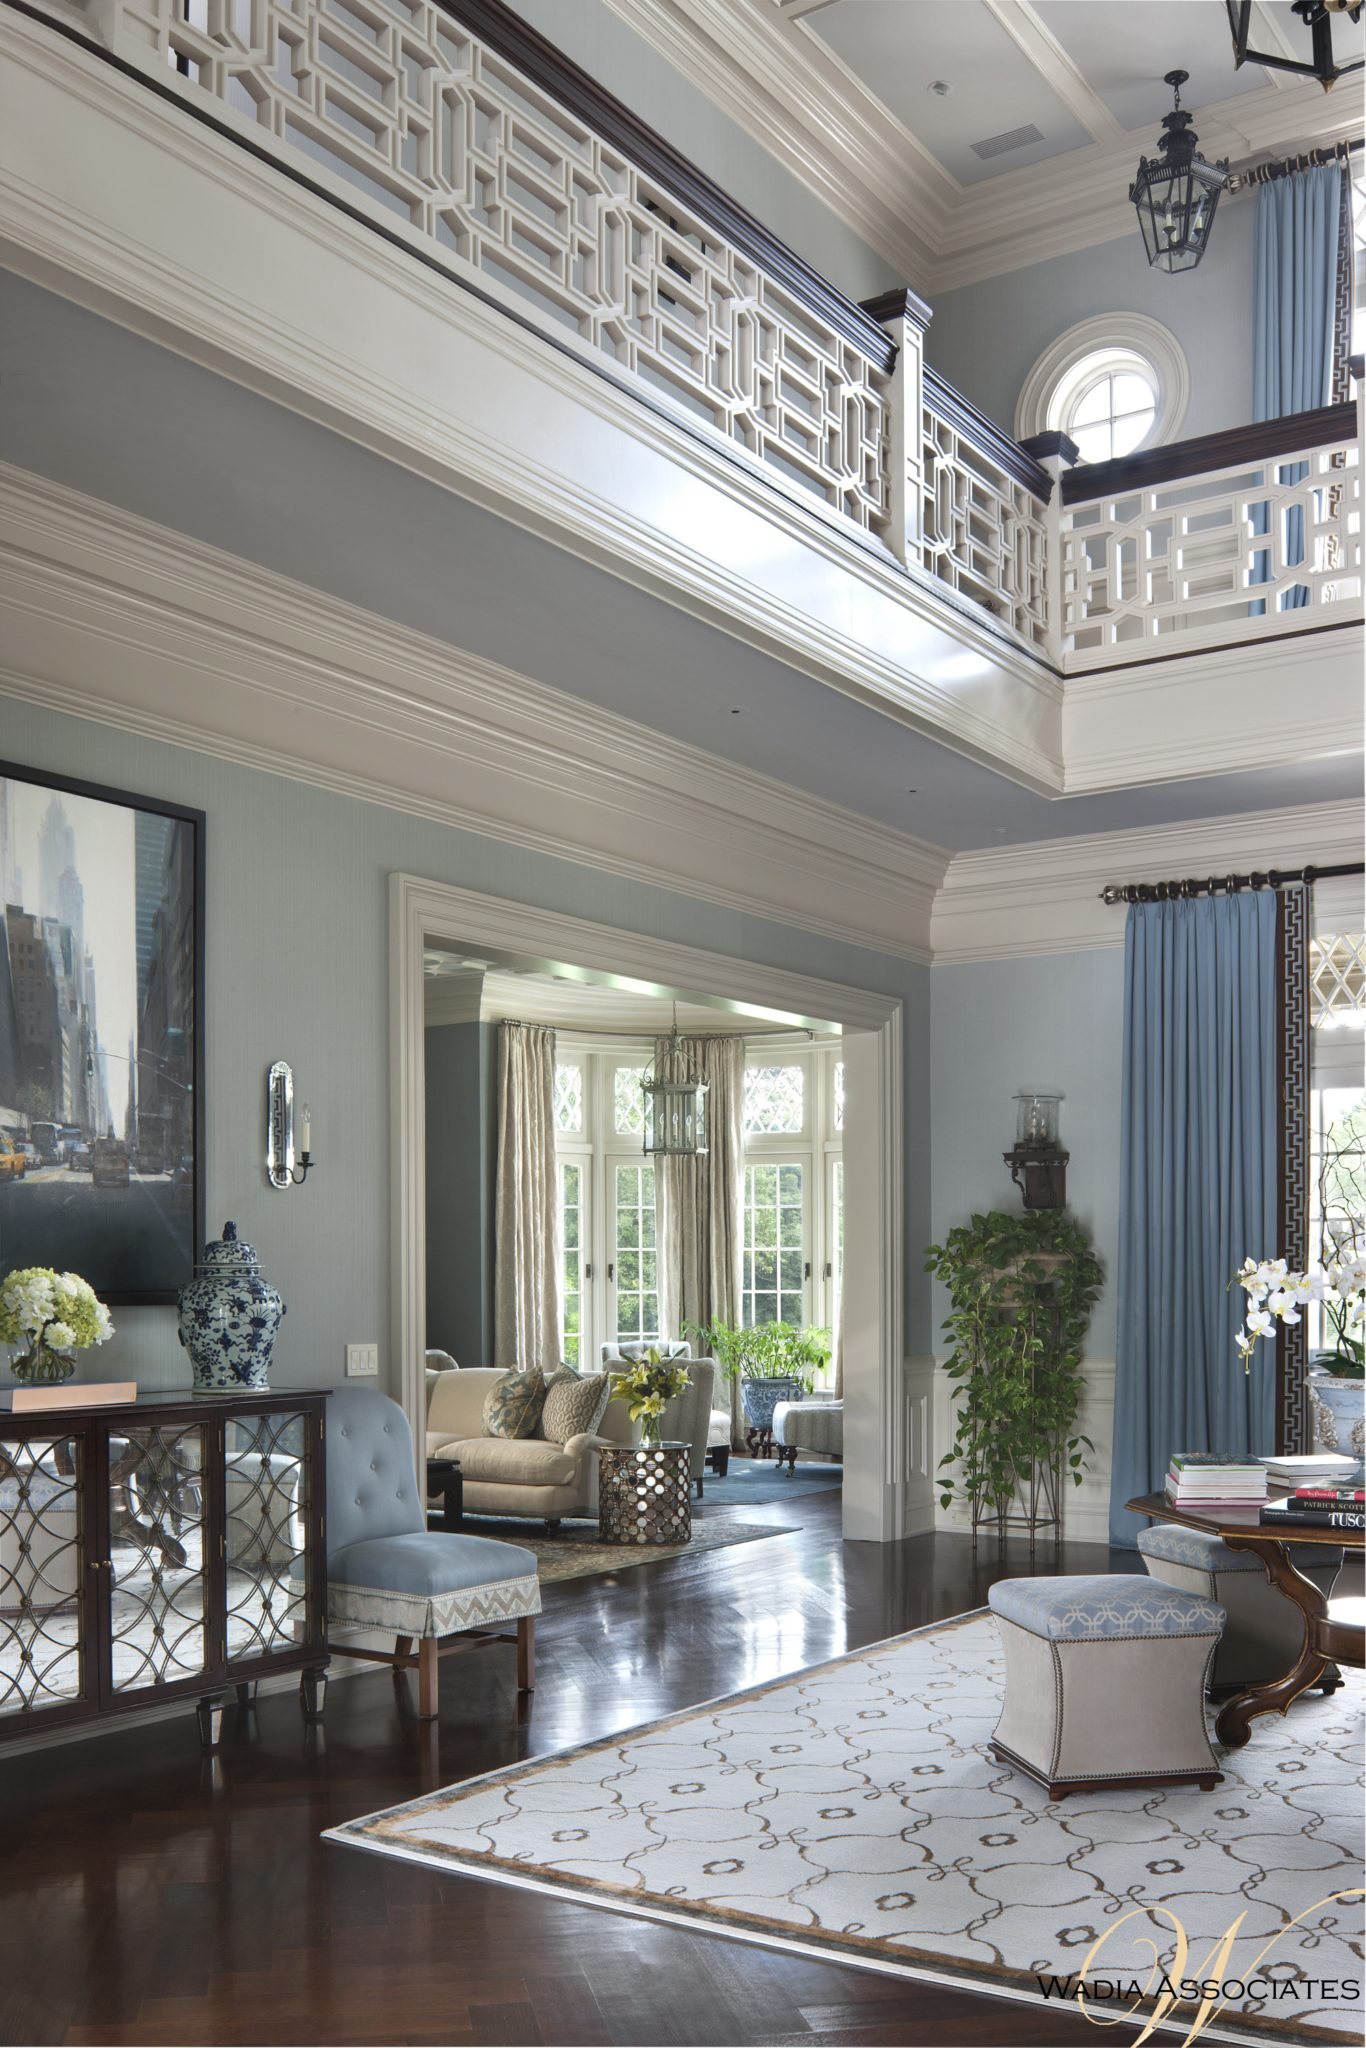 From banister detailing to the use of natural lighting, we let the space take on the personality of the homeowner within the context of Jacobean vernacular, creating a one of a kind home. by Wadia Associates